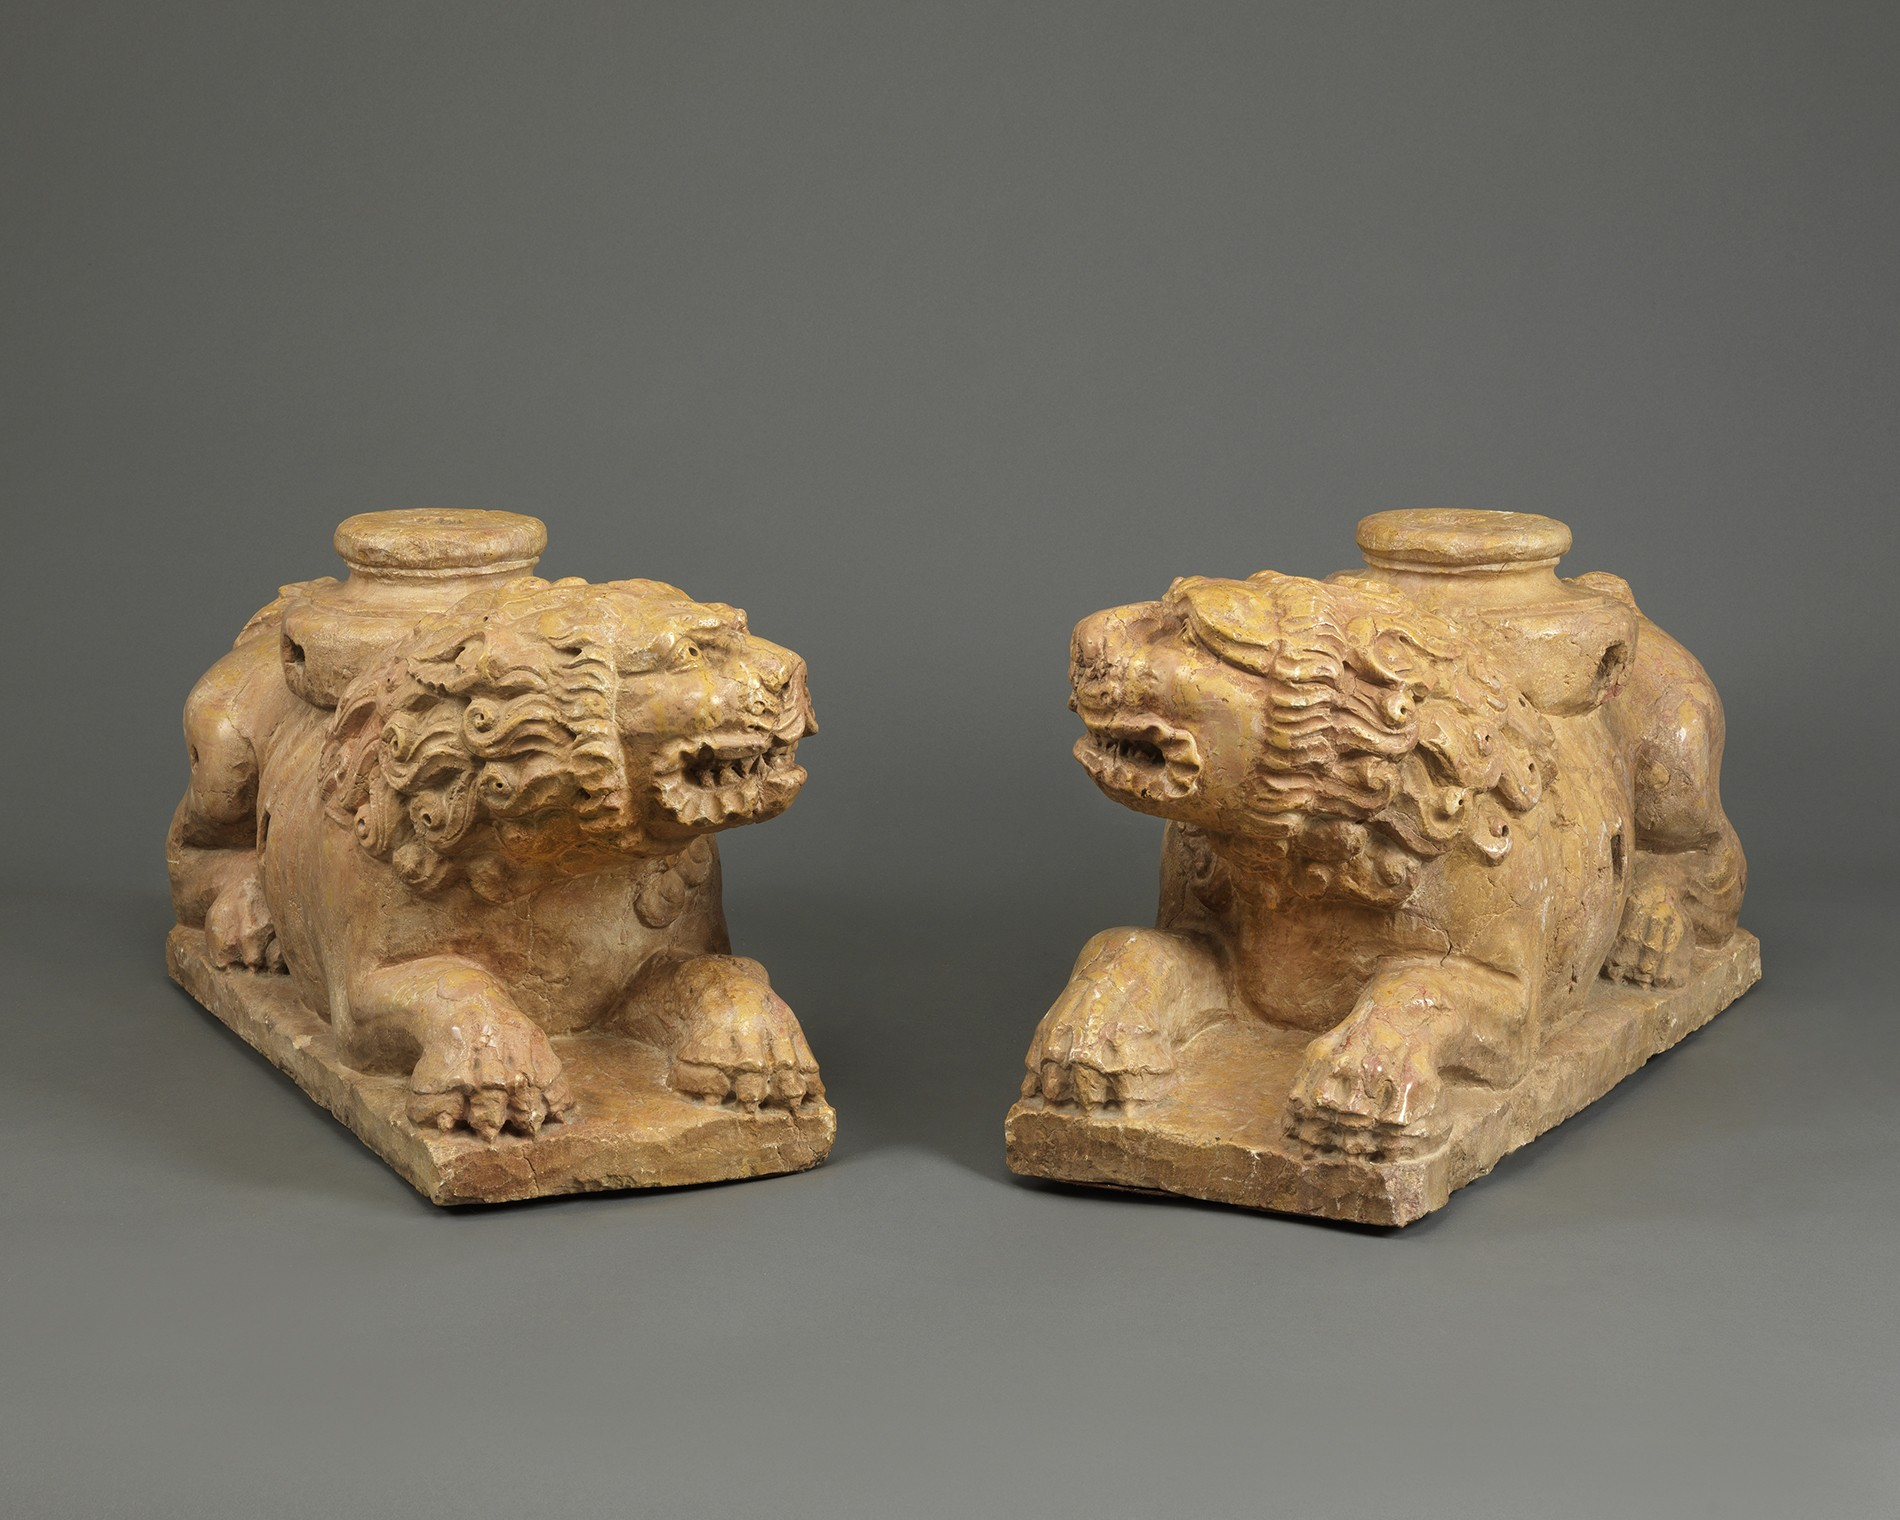 A Pair of Recumbent Lions, Italy, Venice, first half 16th century